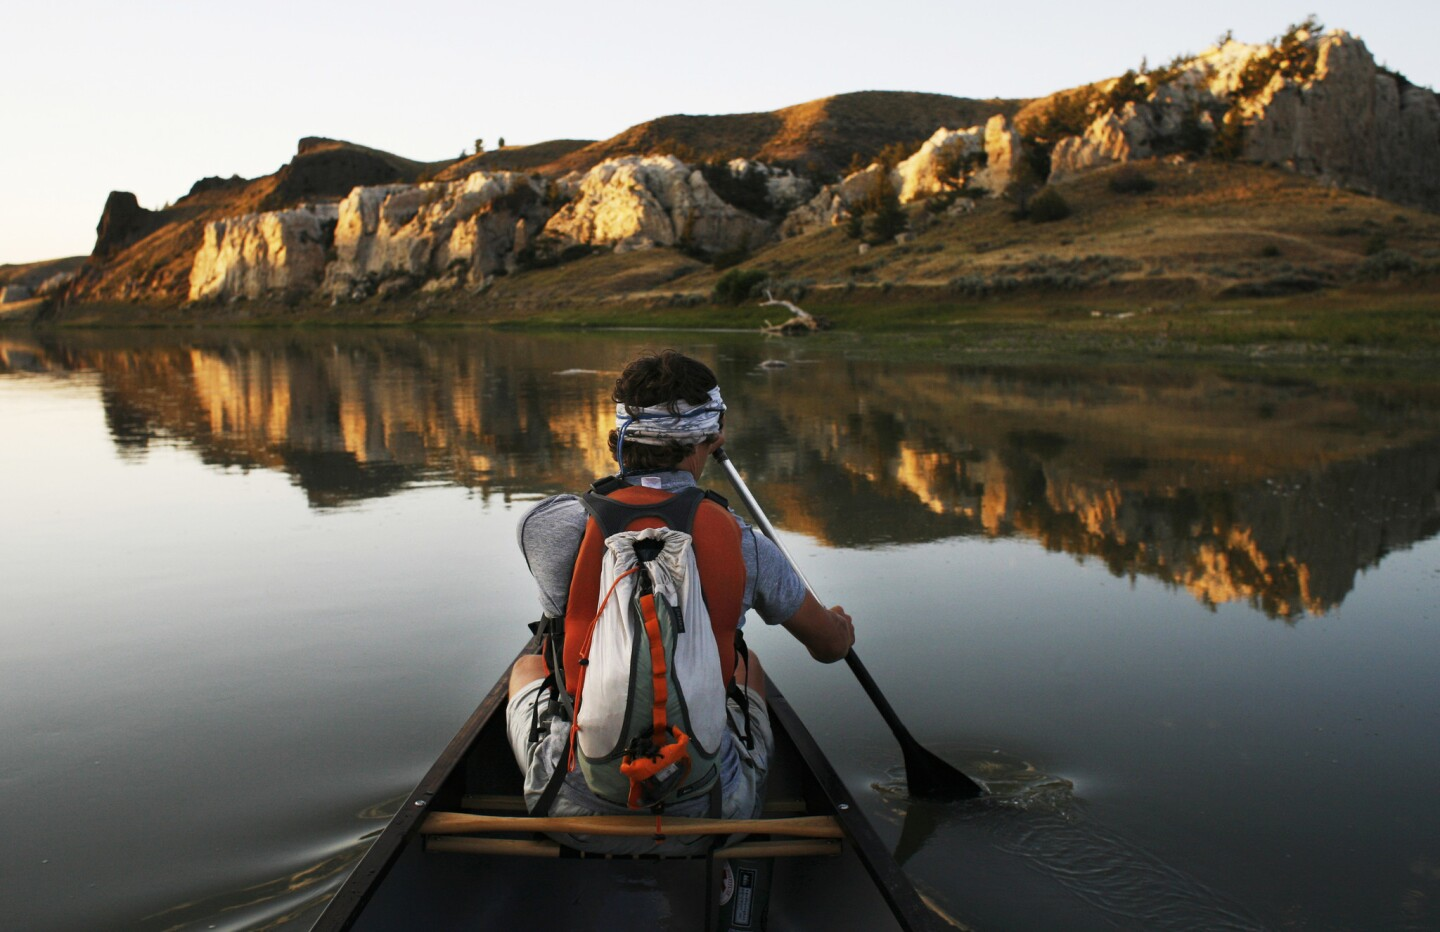 Morning canoe paddle in front of the White Cliffs on Montana's Missouri River off the Lewis & Clark Trail.